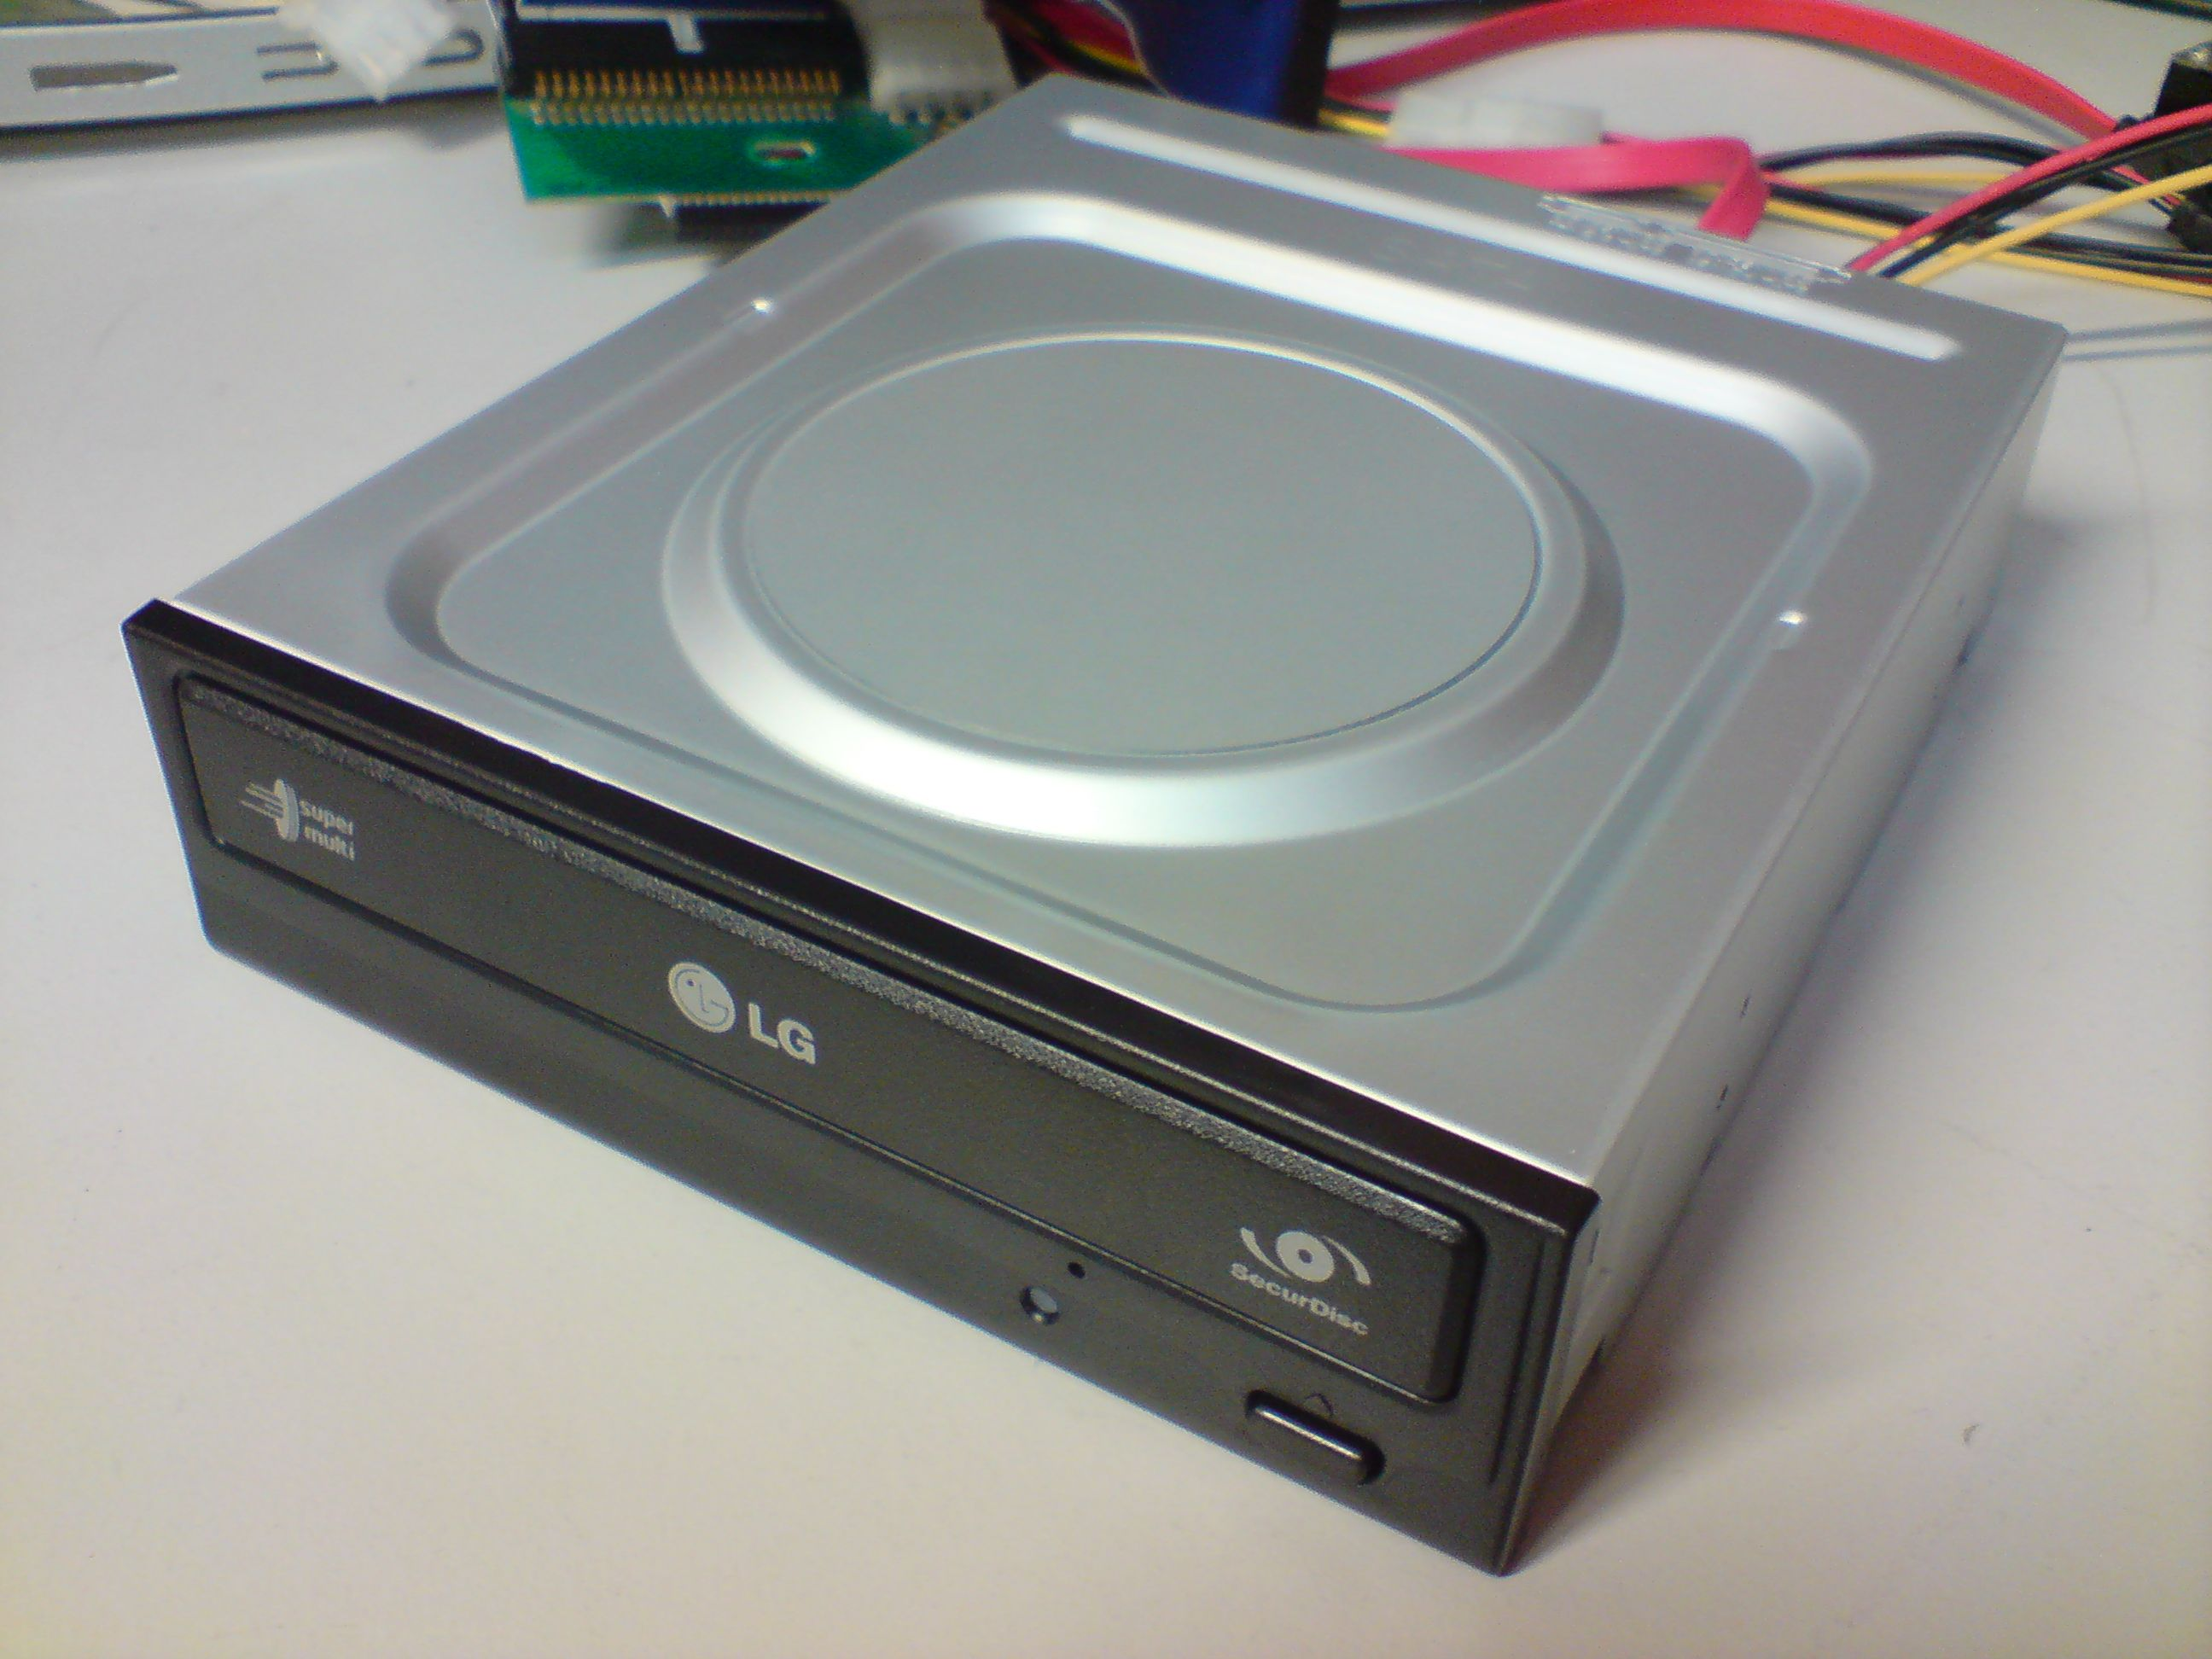 How to troubleshoot your optical drive